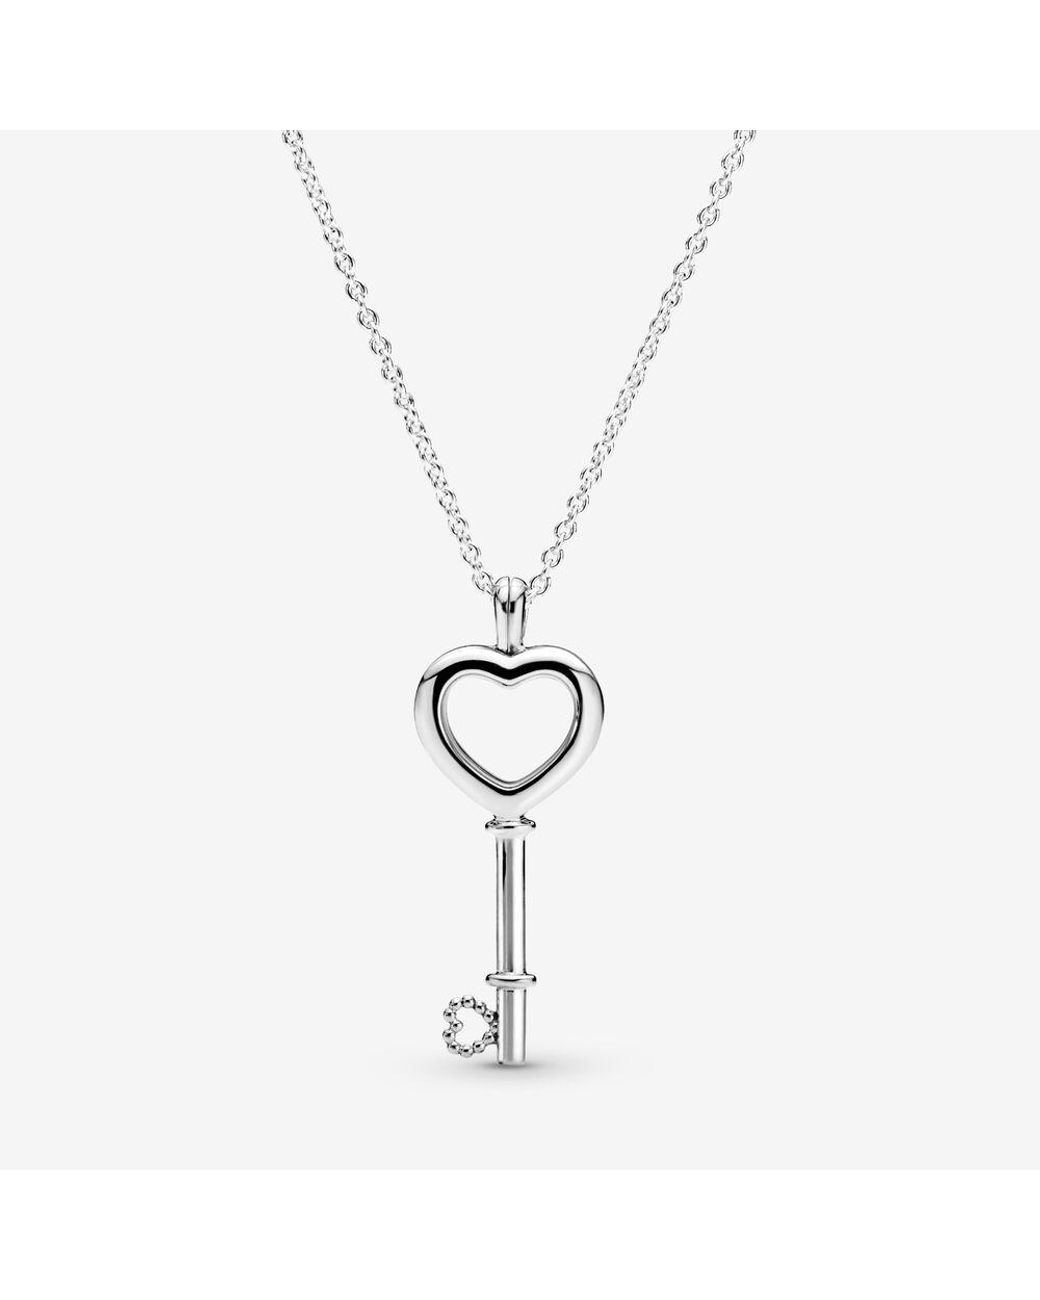 Pandora Lockets Heart Key Necklace In Metallic – Lyst Throughout Recent Pandora Lockets Heart Key Necklaces (View 12 of 25)